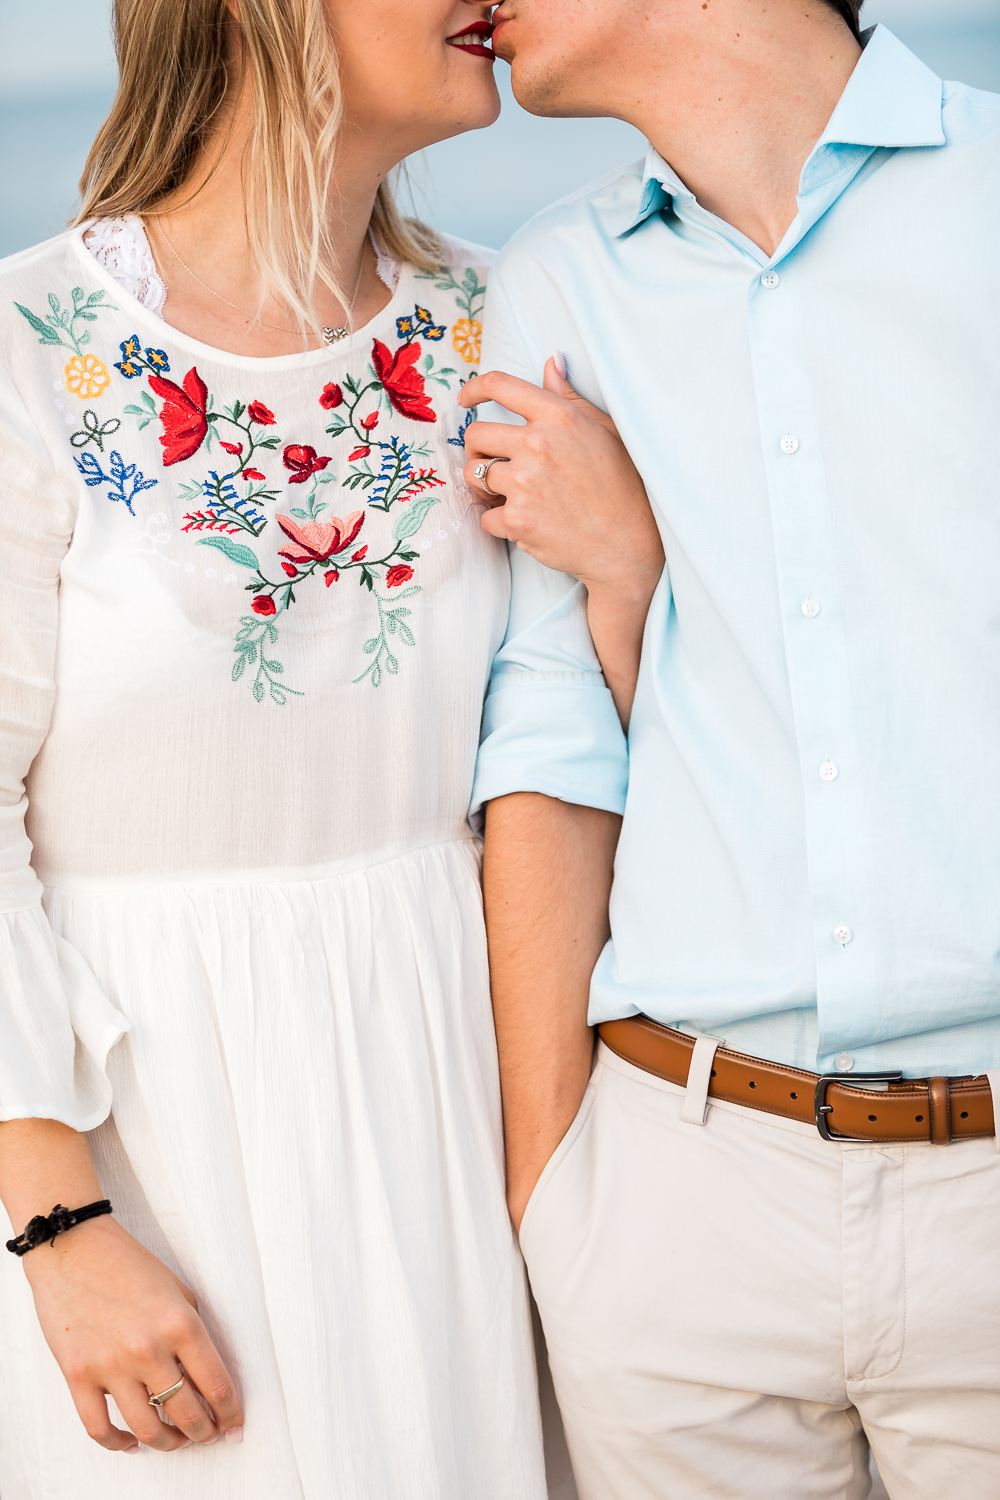 engagement picture posing ideas